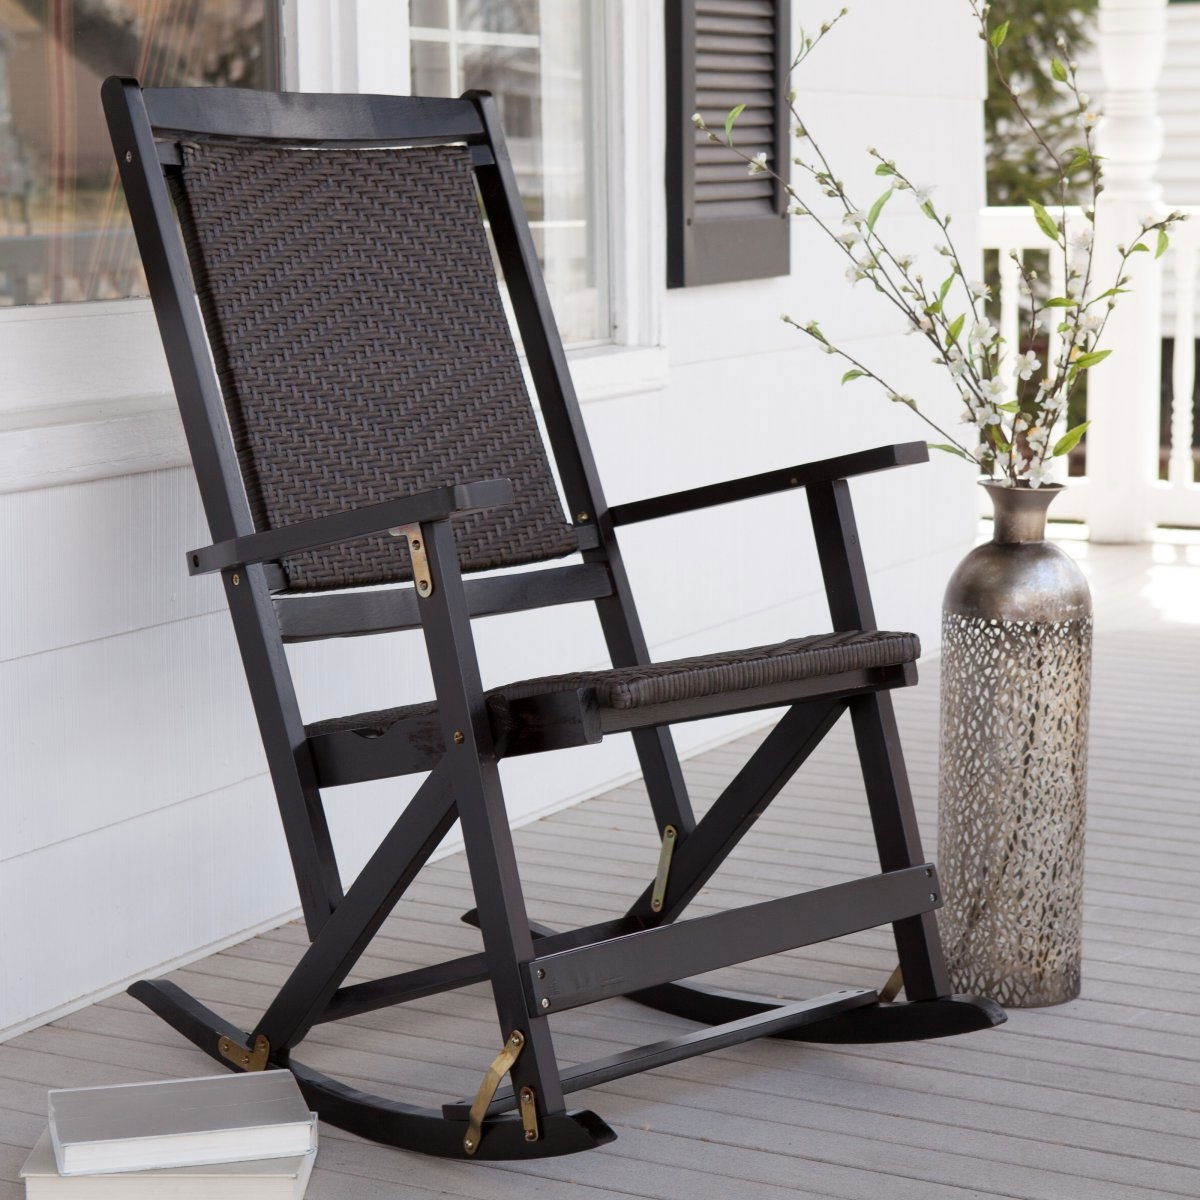 Preferred Outdoor Metal Rocking Chair Modern Chairs Quality Interior Lawn Intended For Outdoor Patio Metal Rocking Chairs (View 15 of 15)